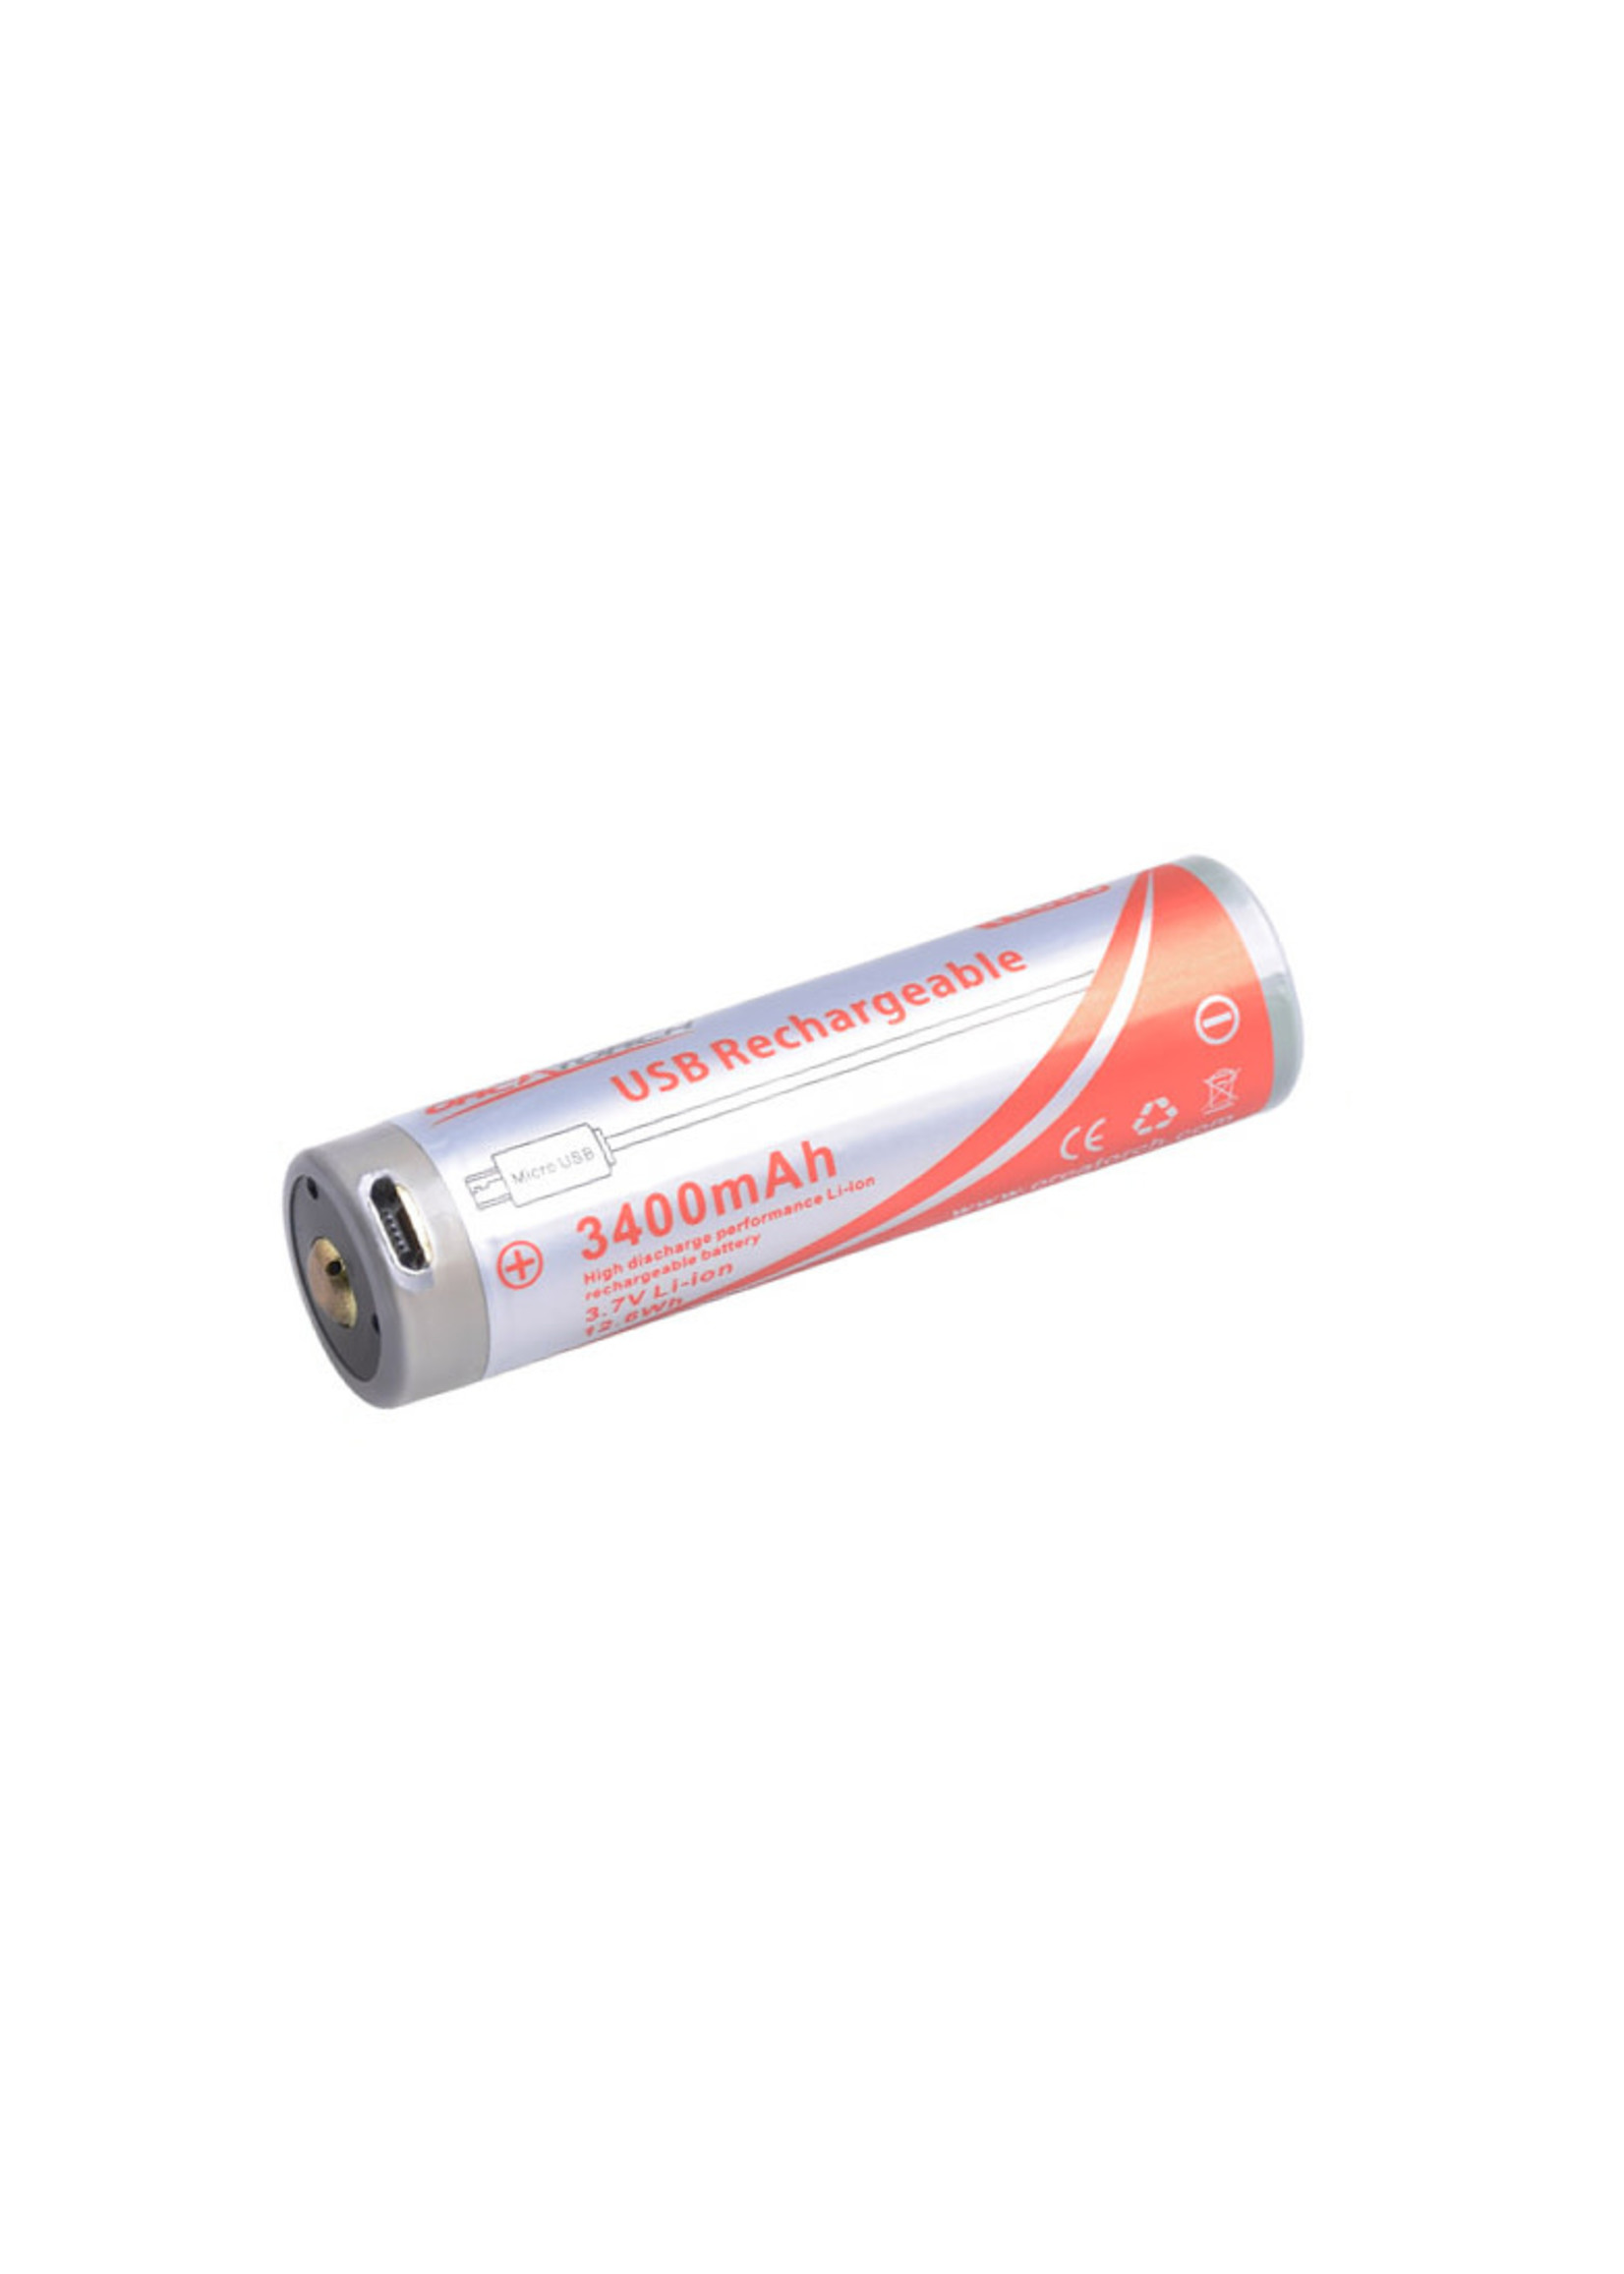 OrcaTorch OrcaTorch 18650 USB-Rechargeable Battery